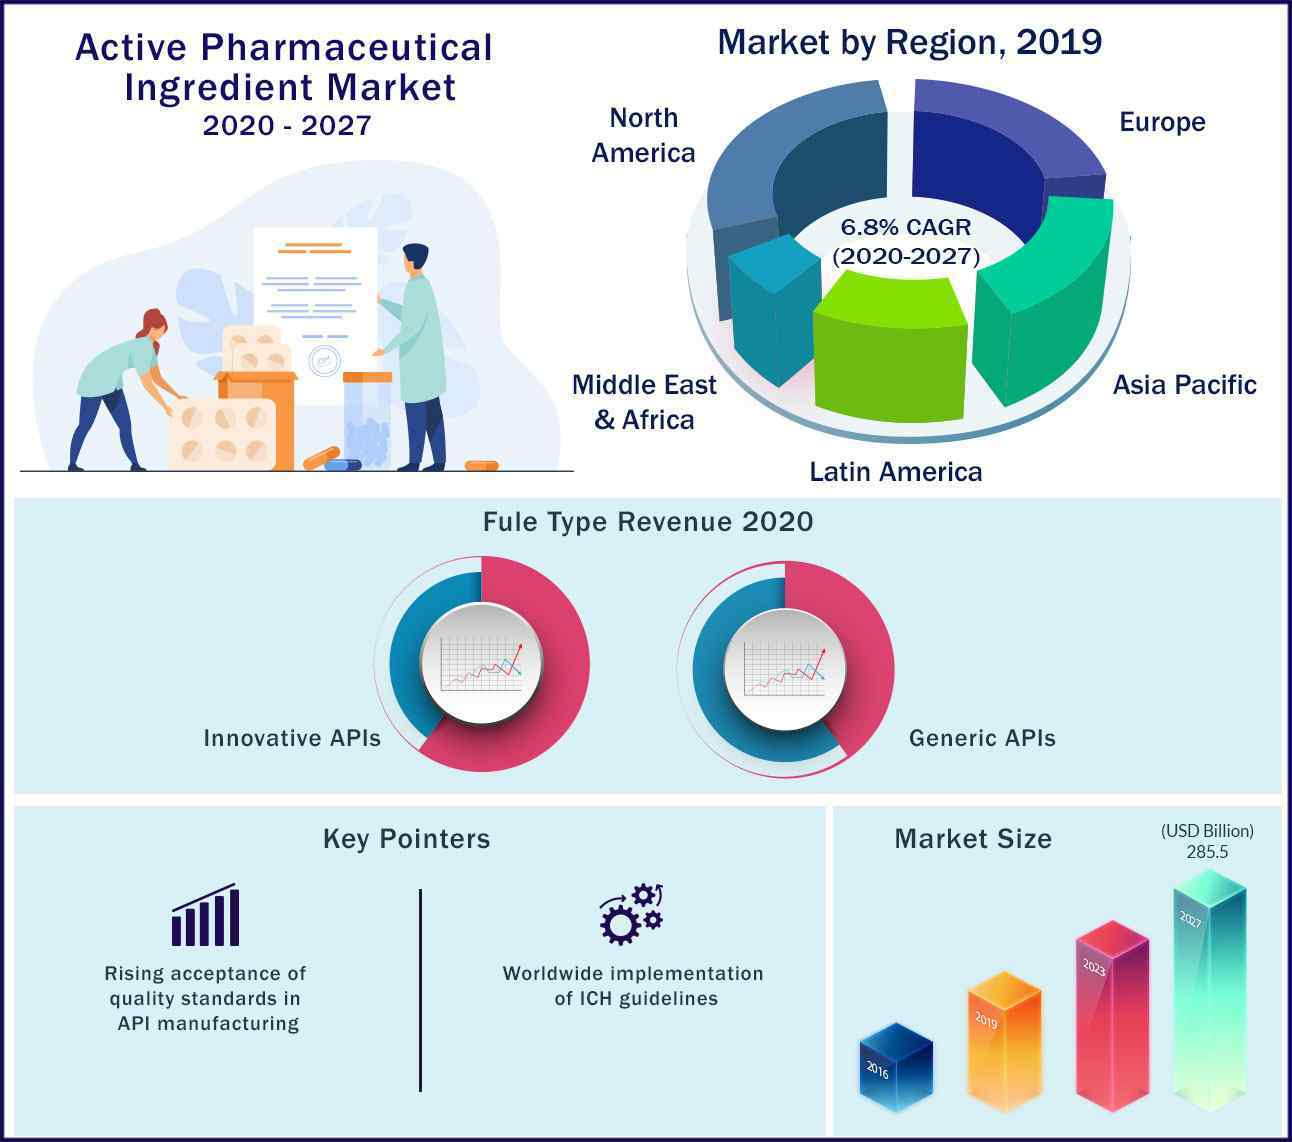 Global Active Pharmaceutical Ingredient Market 2020 to 2027